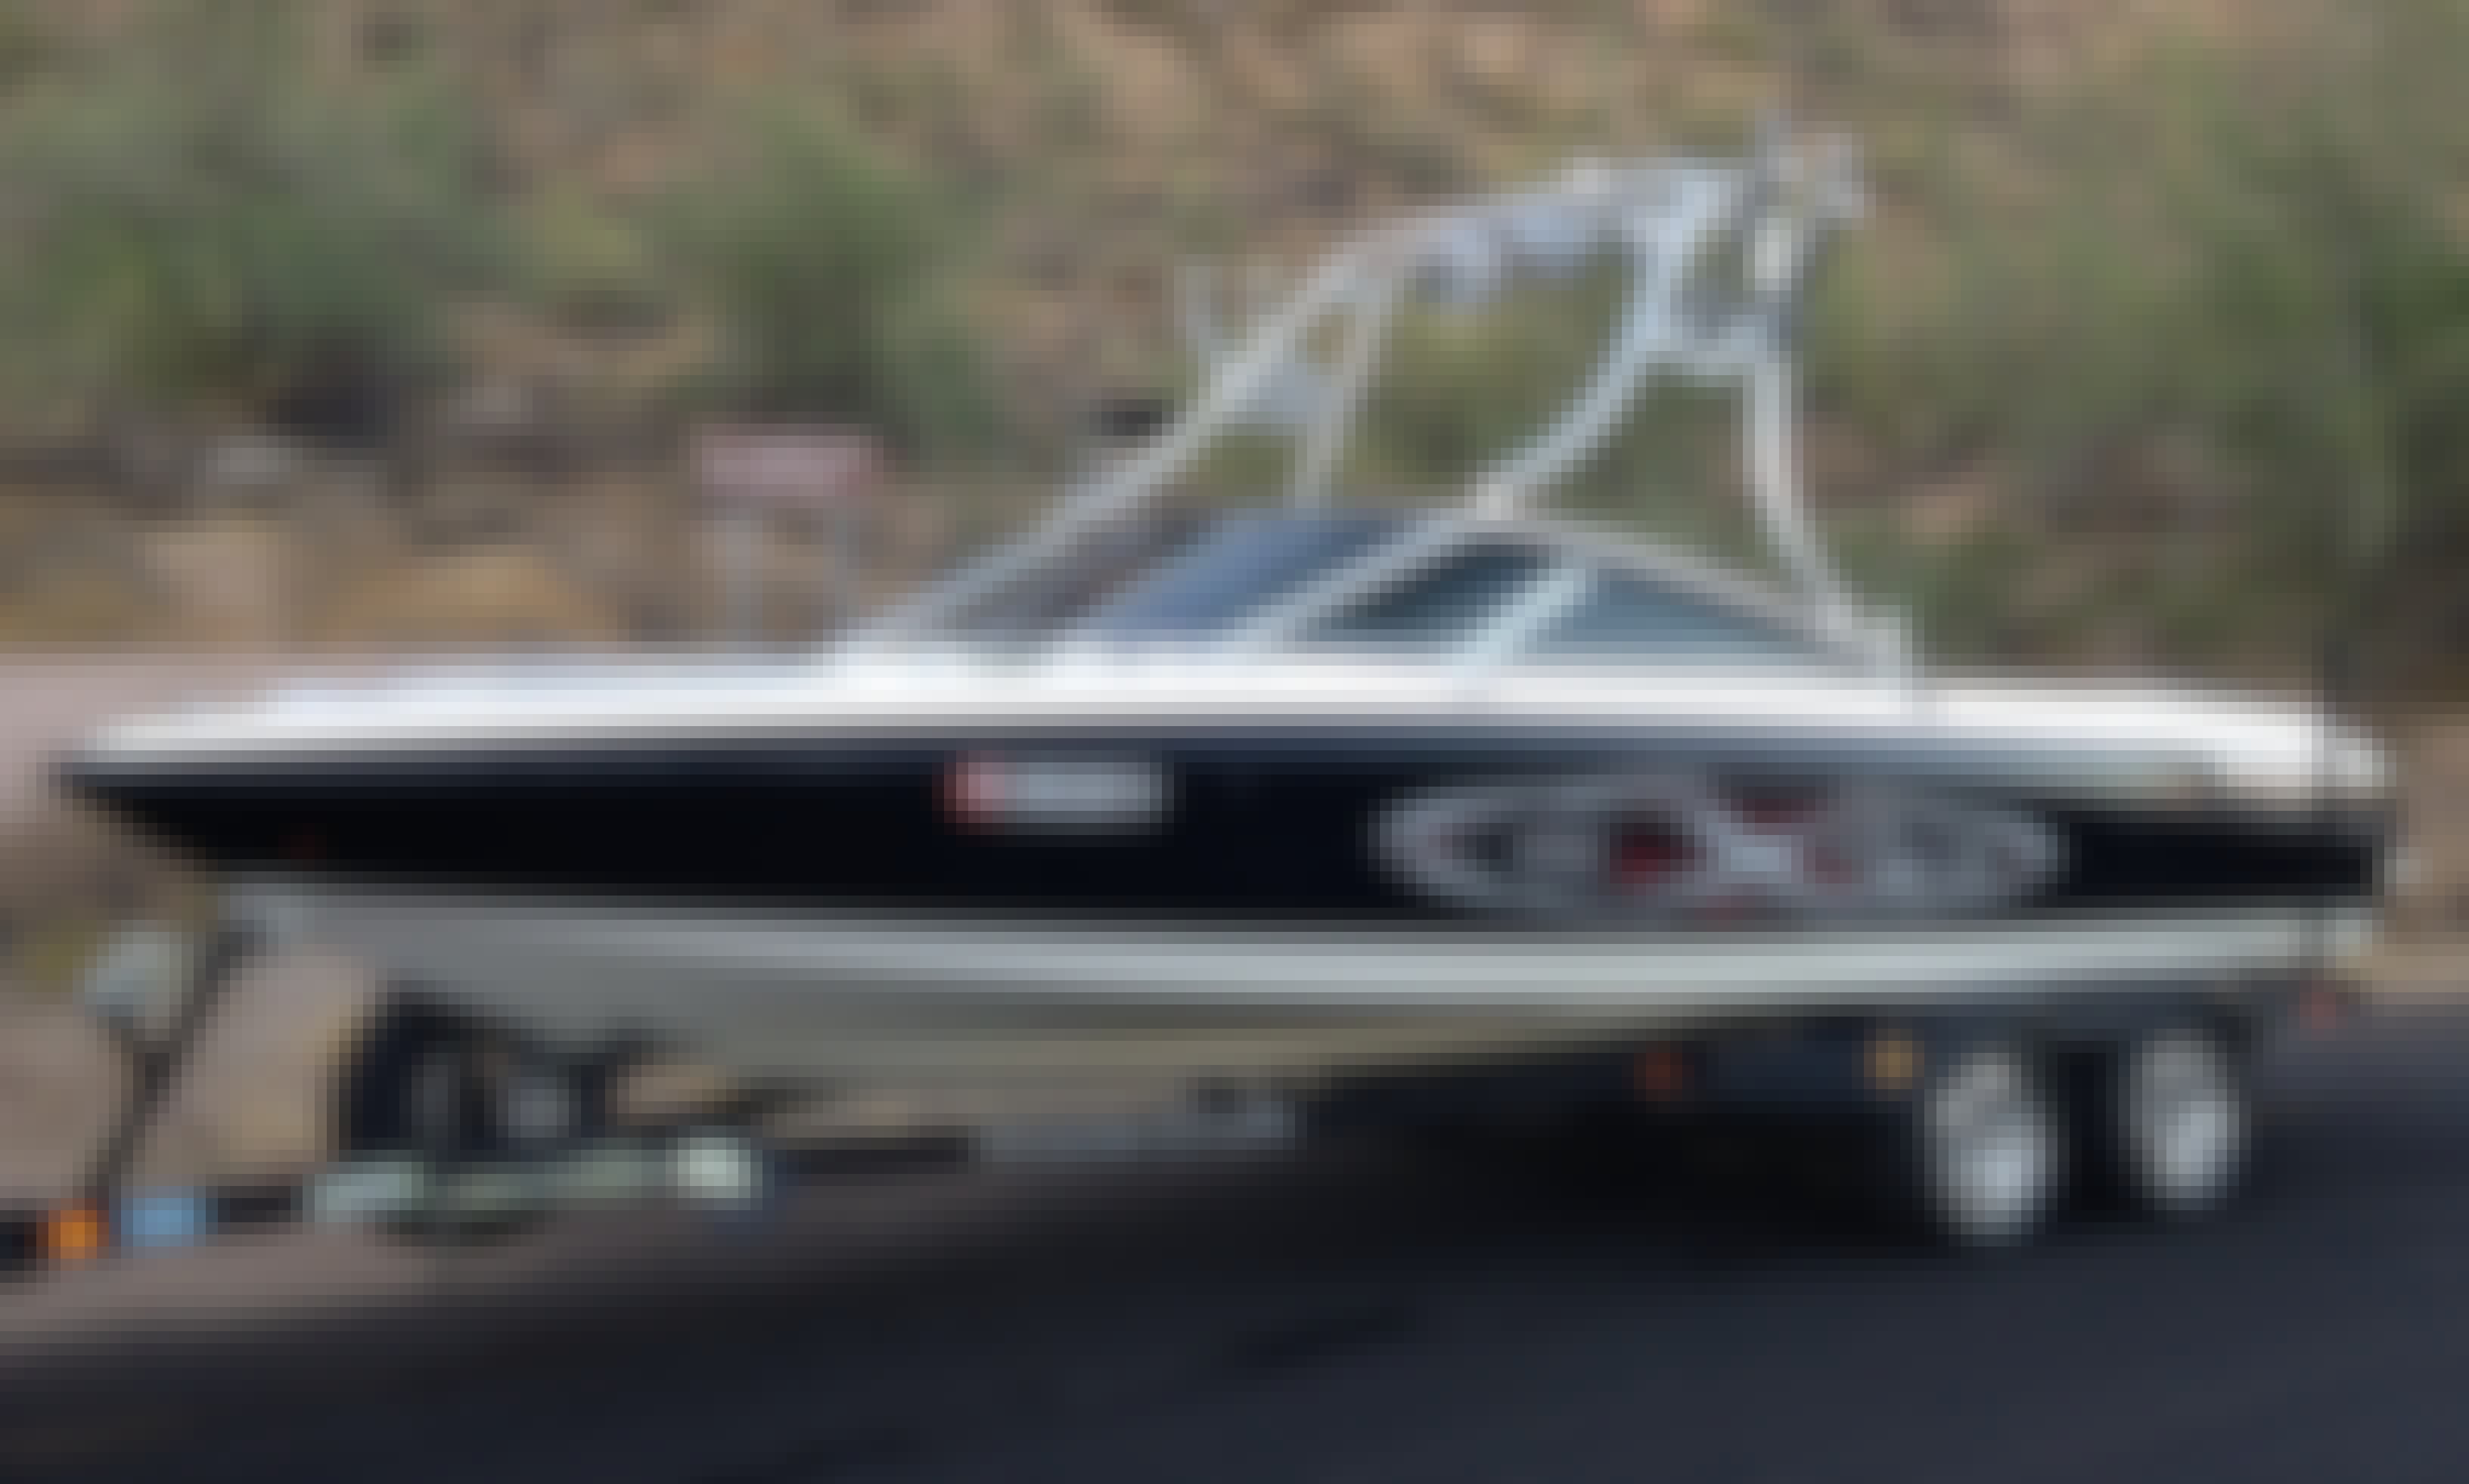 Rent this MasterCraft X30 Surf Boat in Gilbert, Arizona